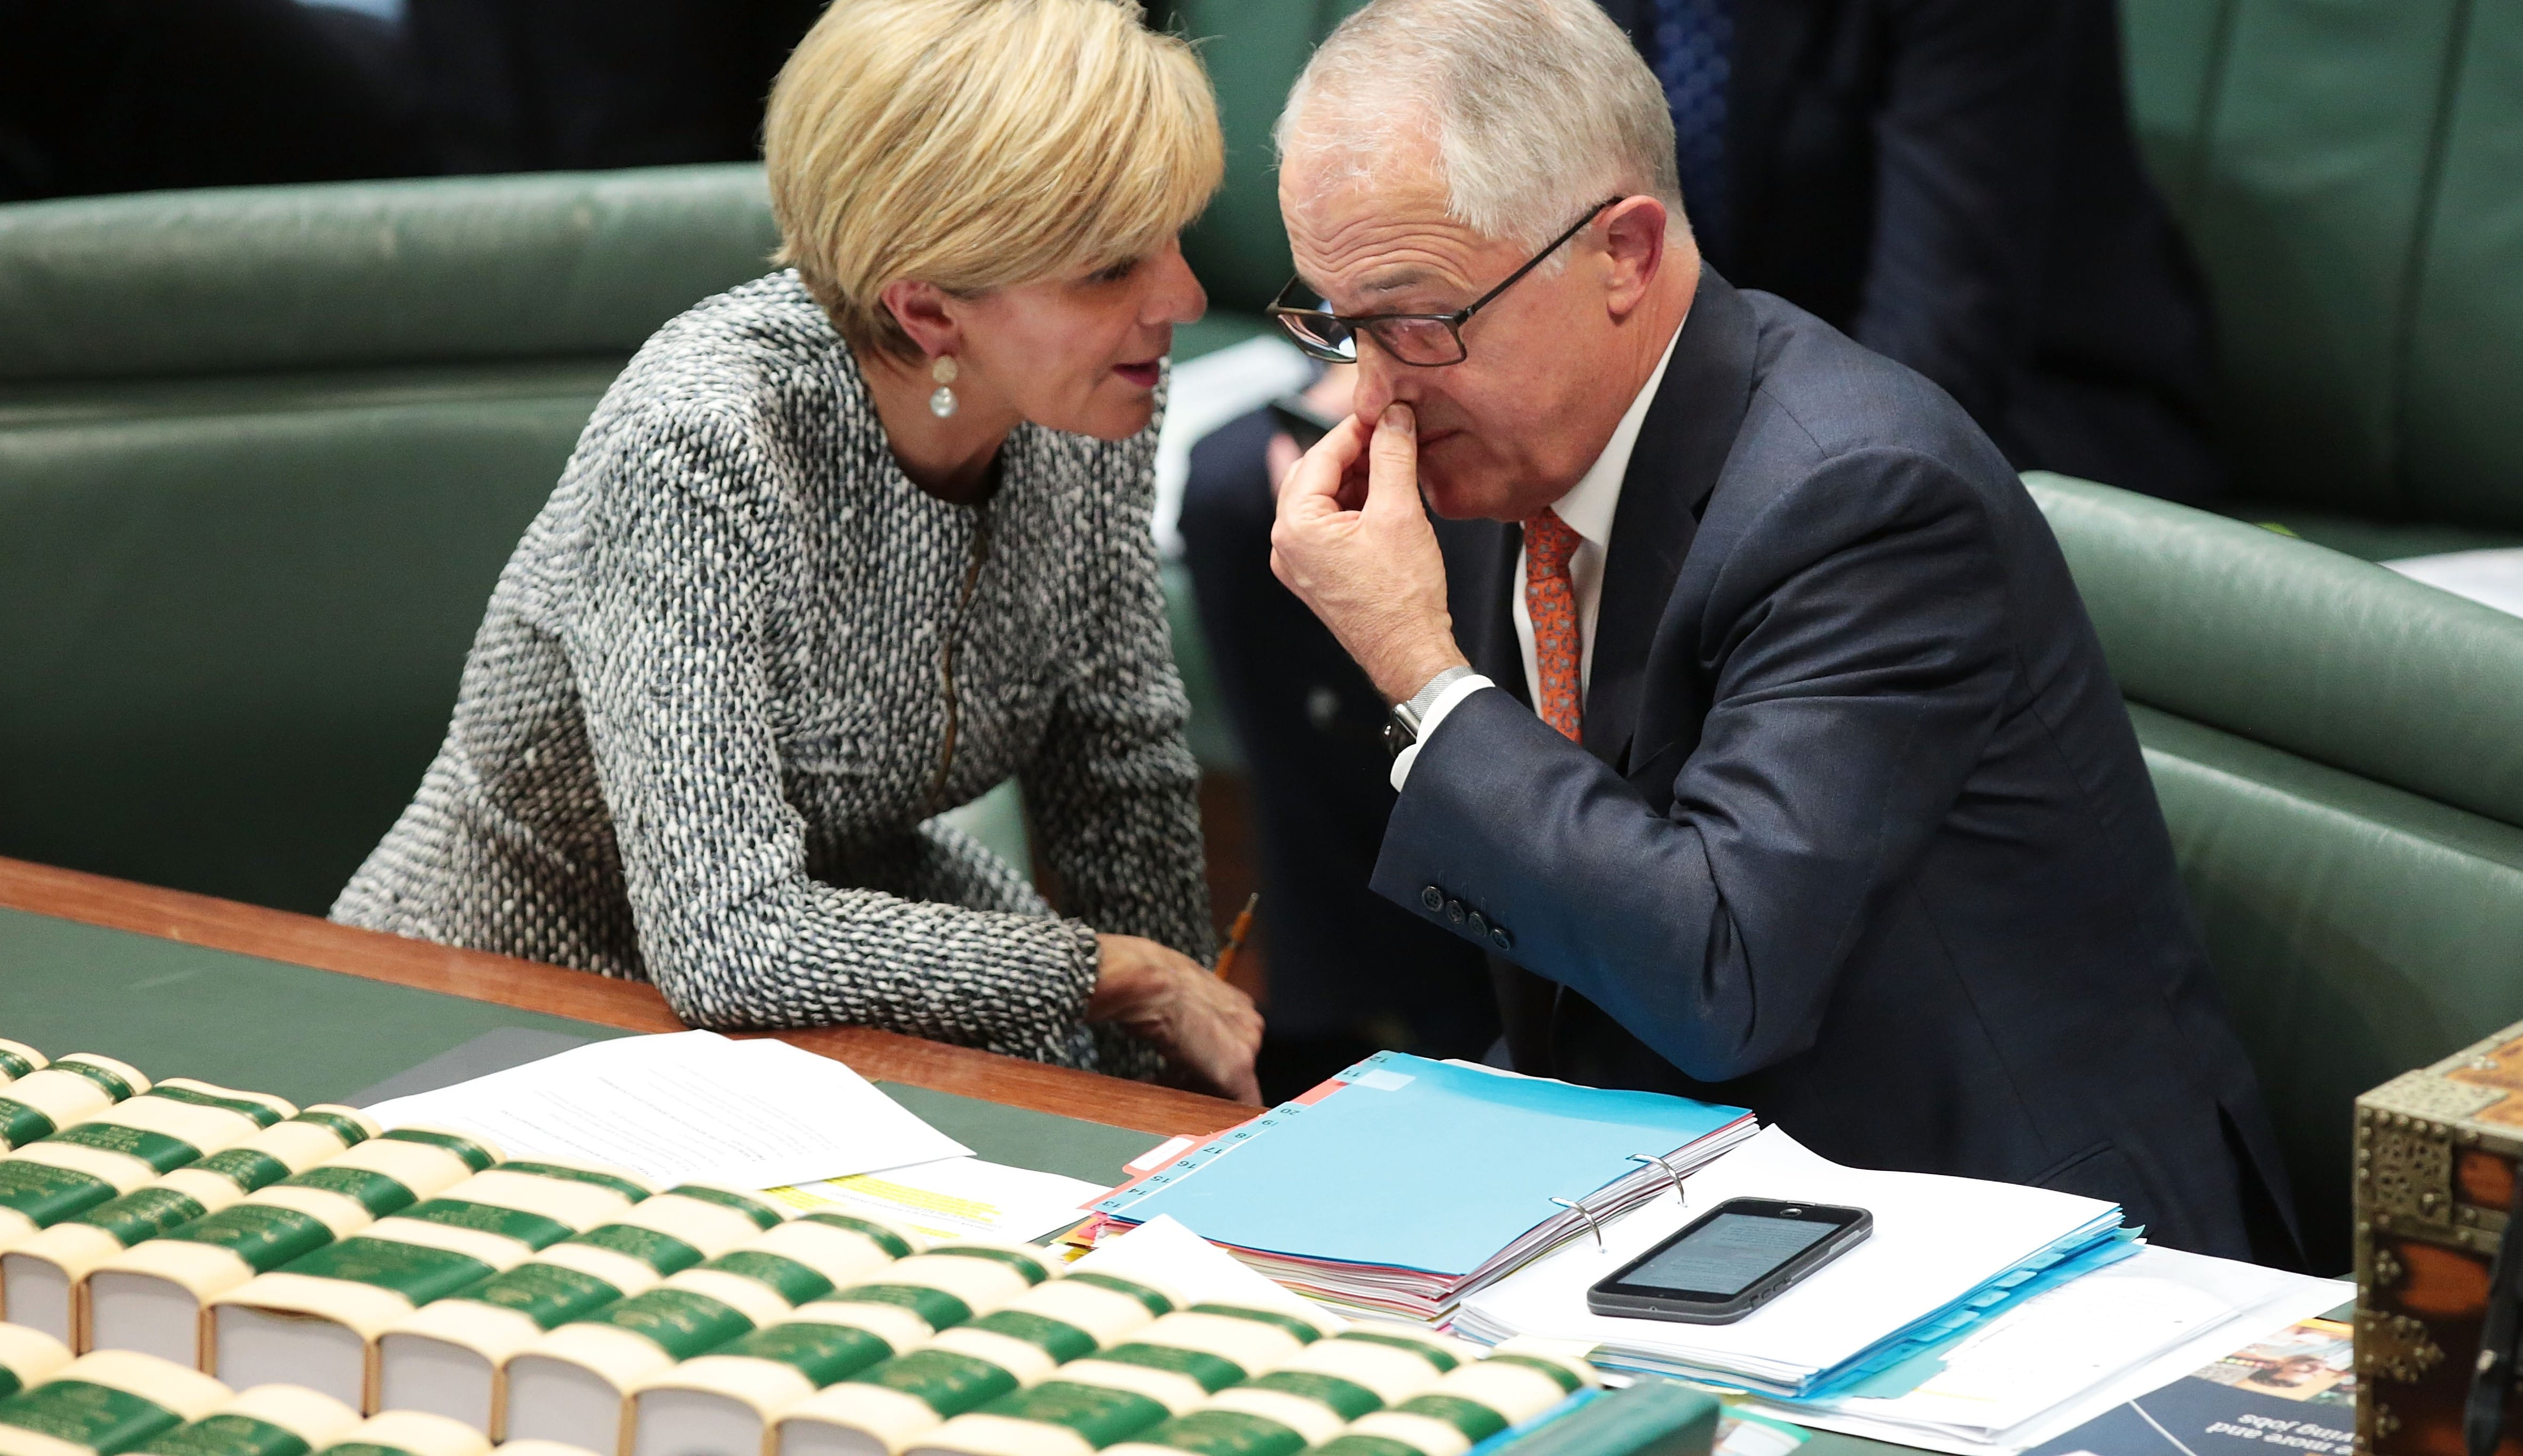 Foreign Minister Julie Bishop speaks with Prime Minister Malcolm Turnbull during question time, May 2017 (Photo: Getty Images/Stefan Postles)